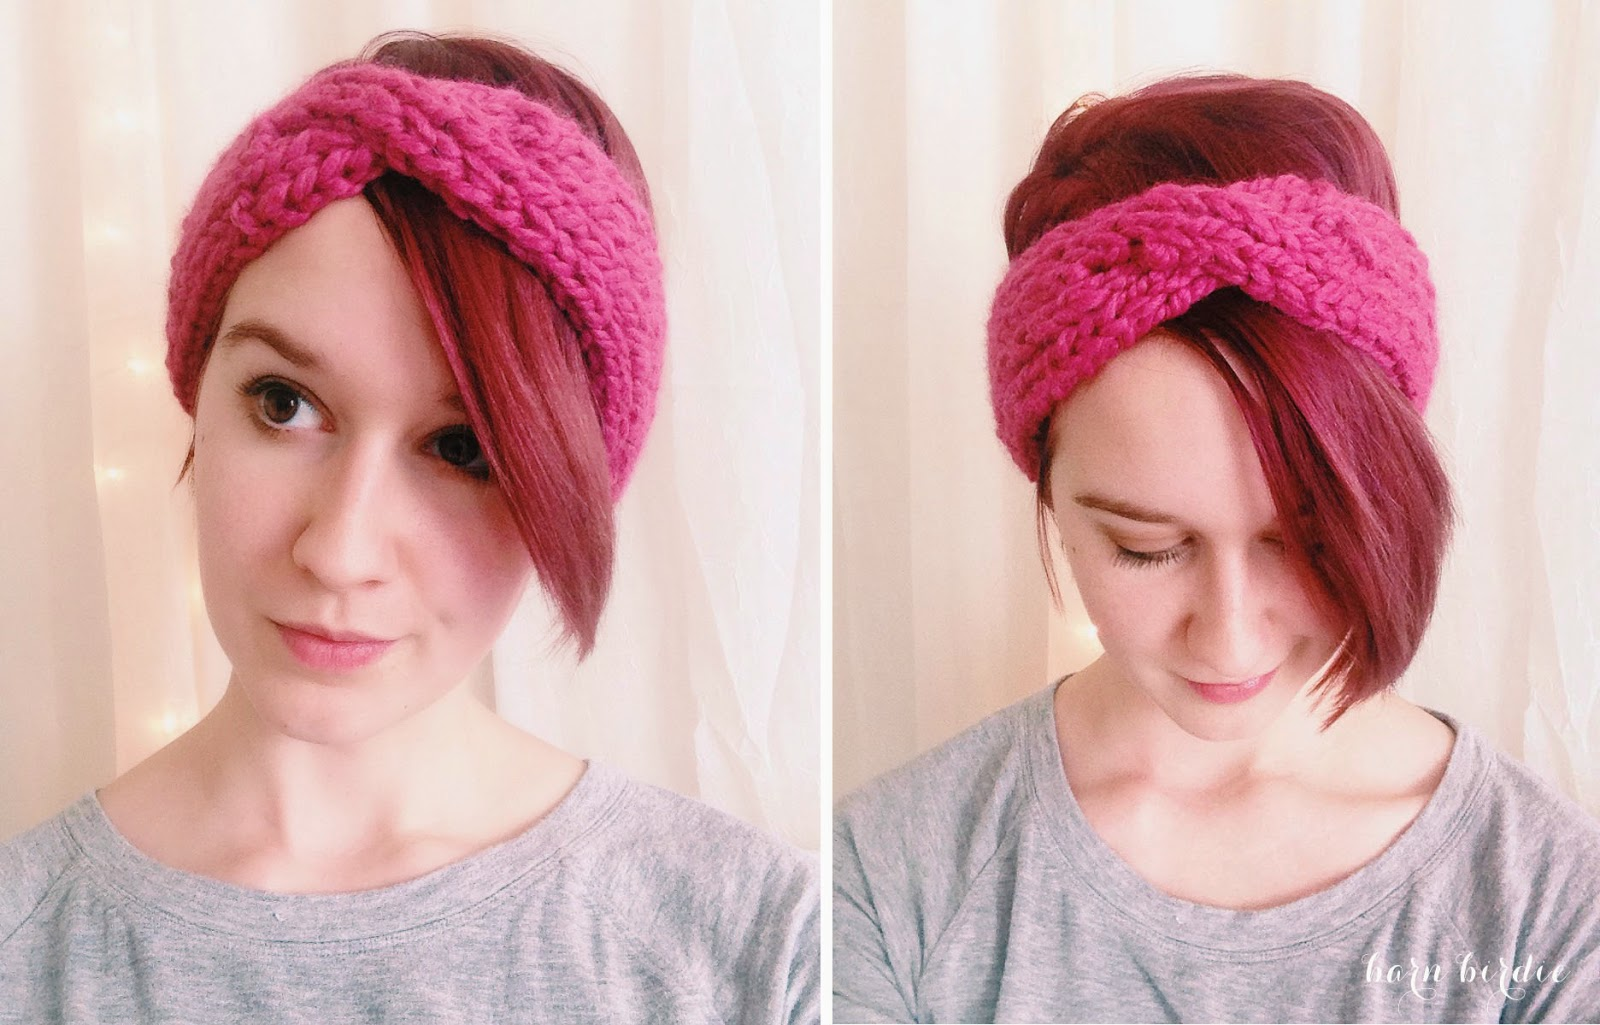 DIY Loom Knit Turban Headband Tutorial